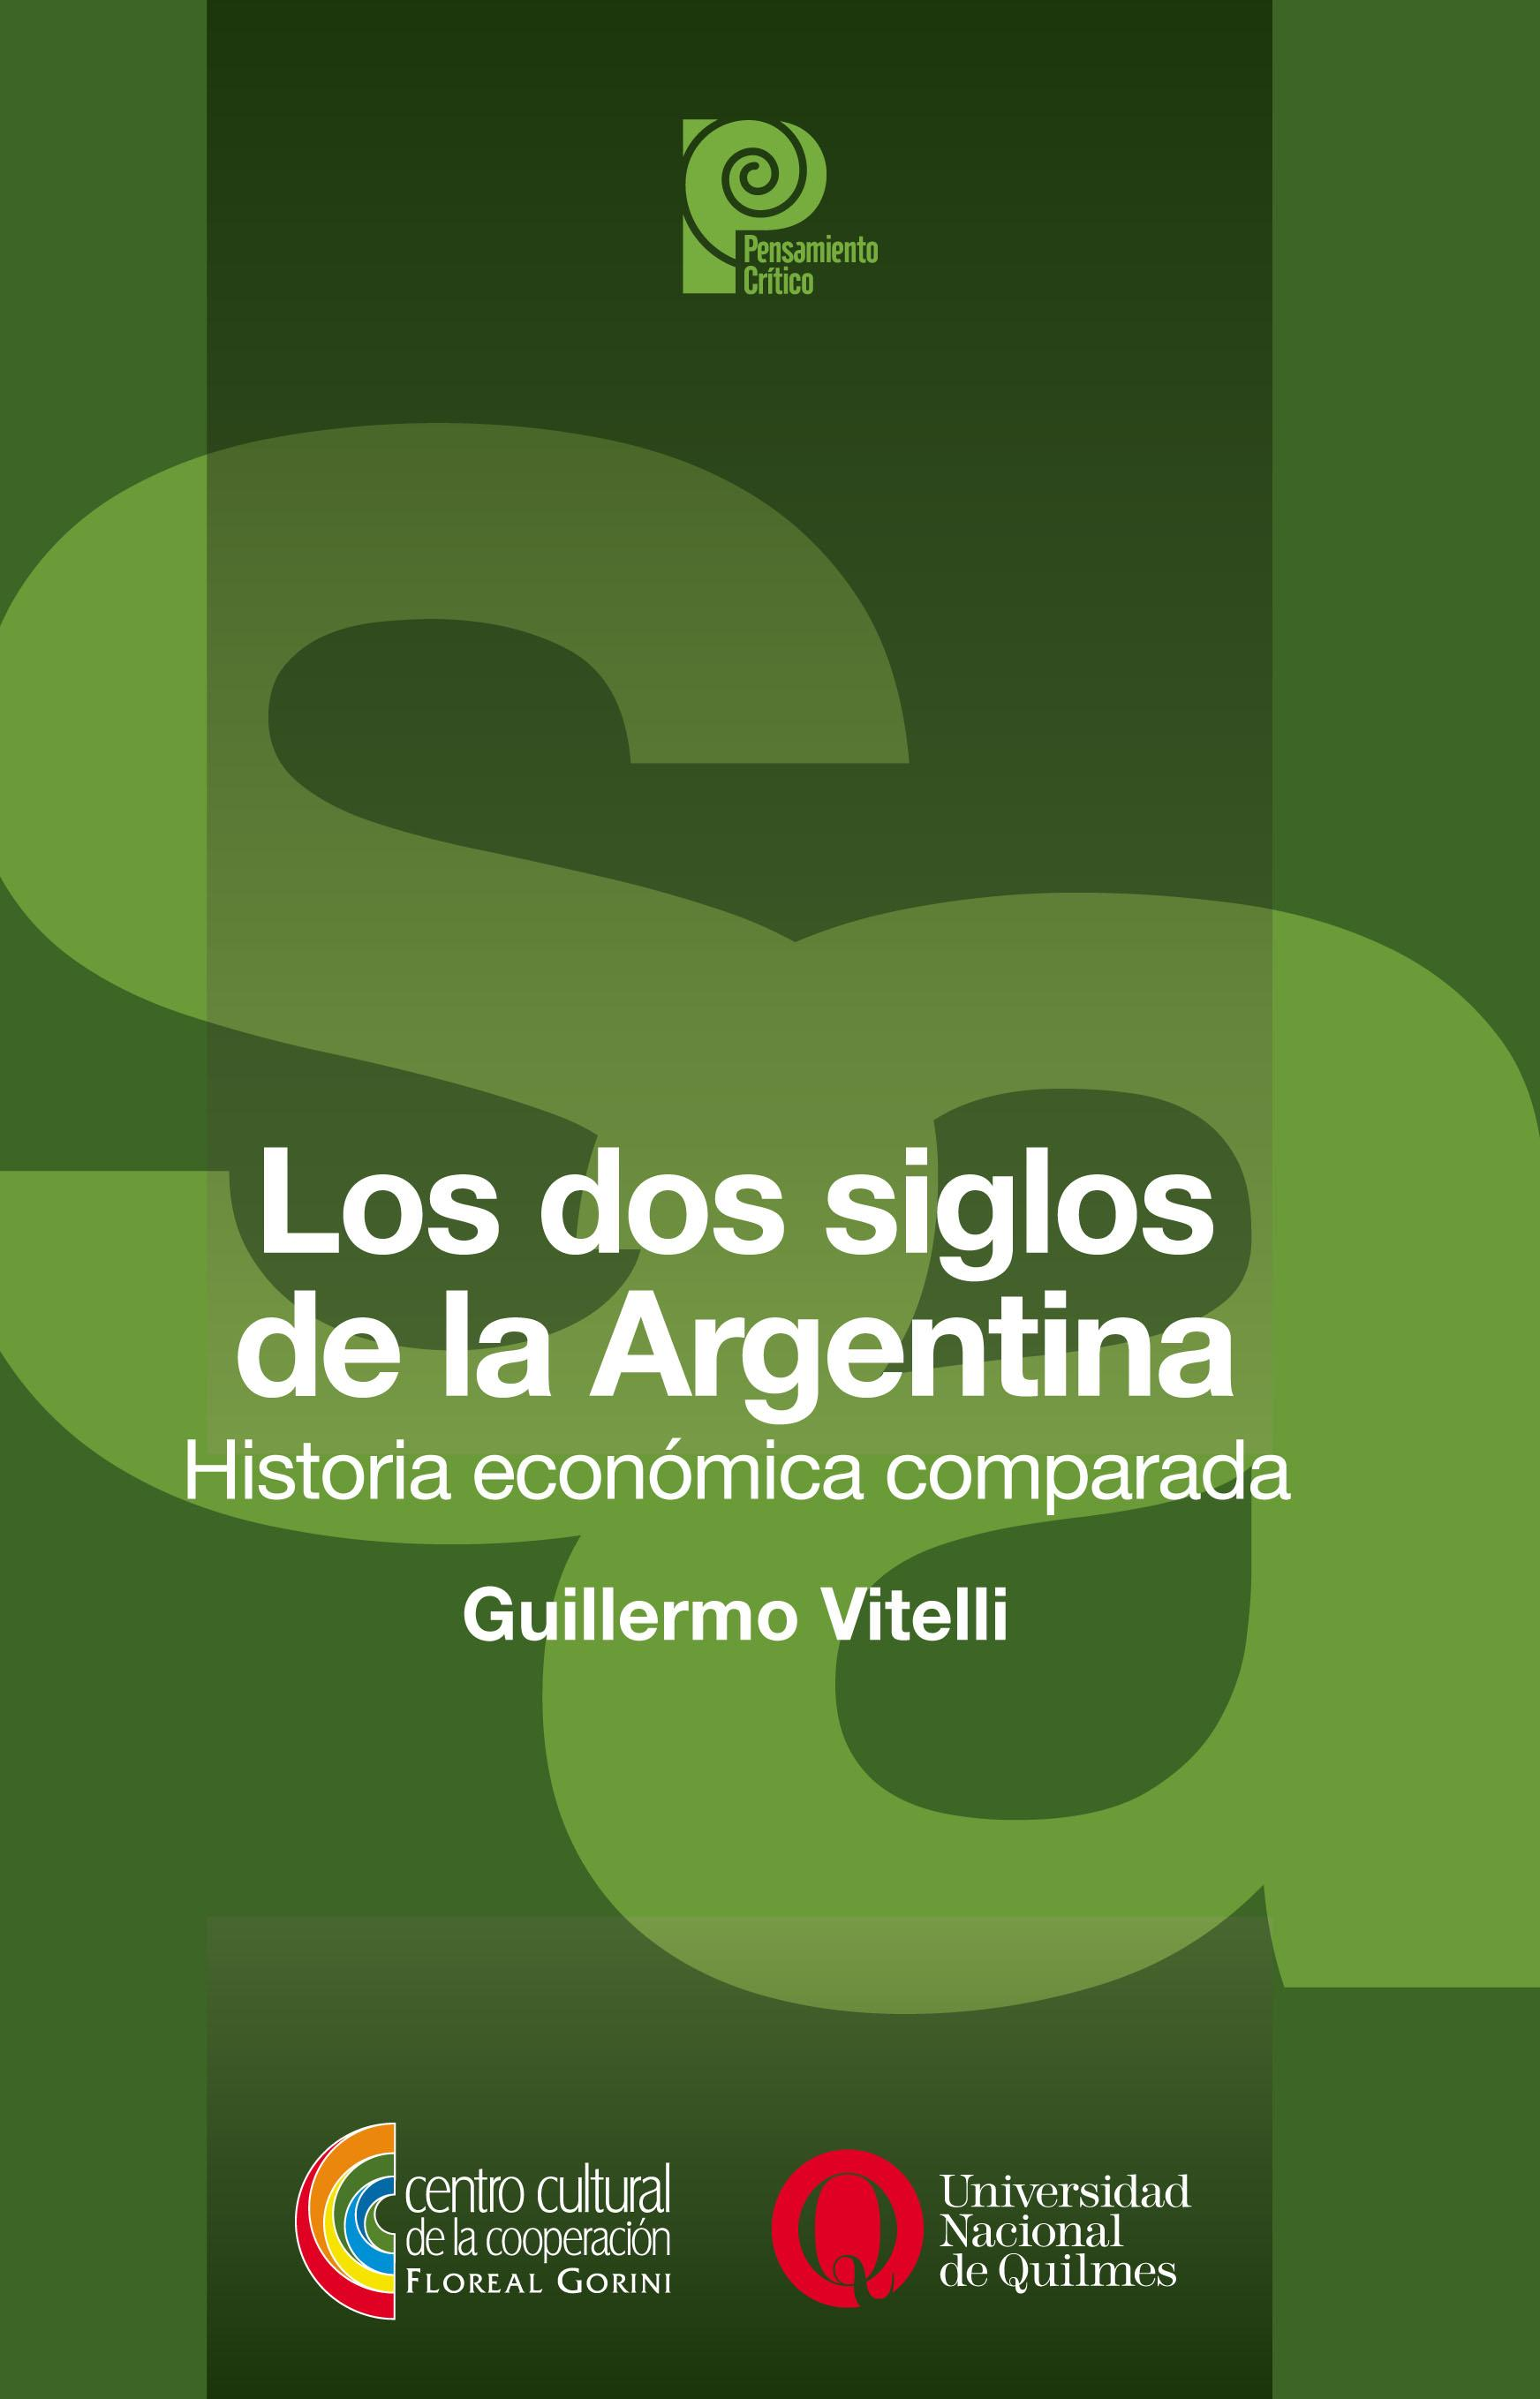 Los dos siglos de la Argentina 